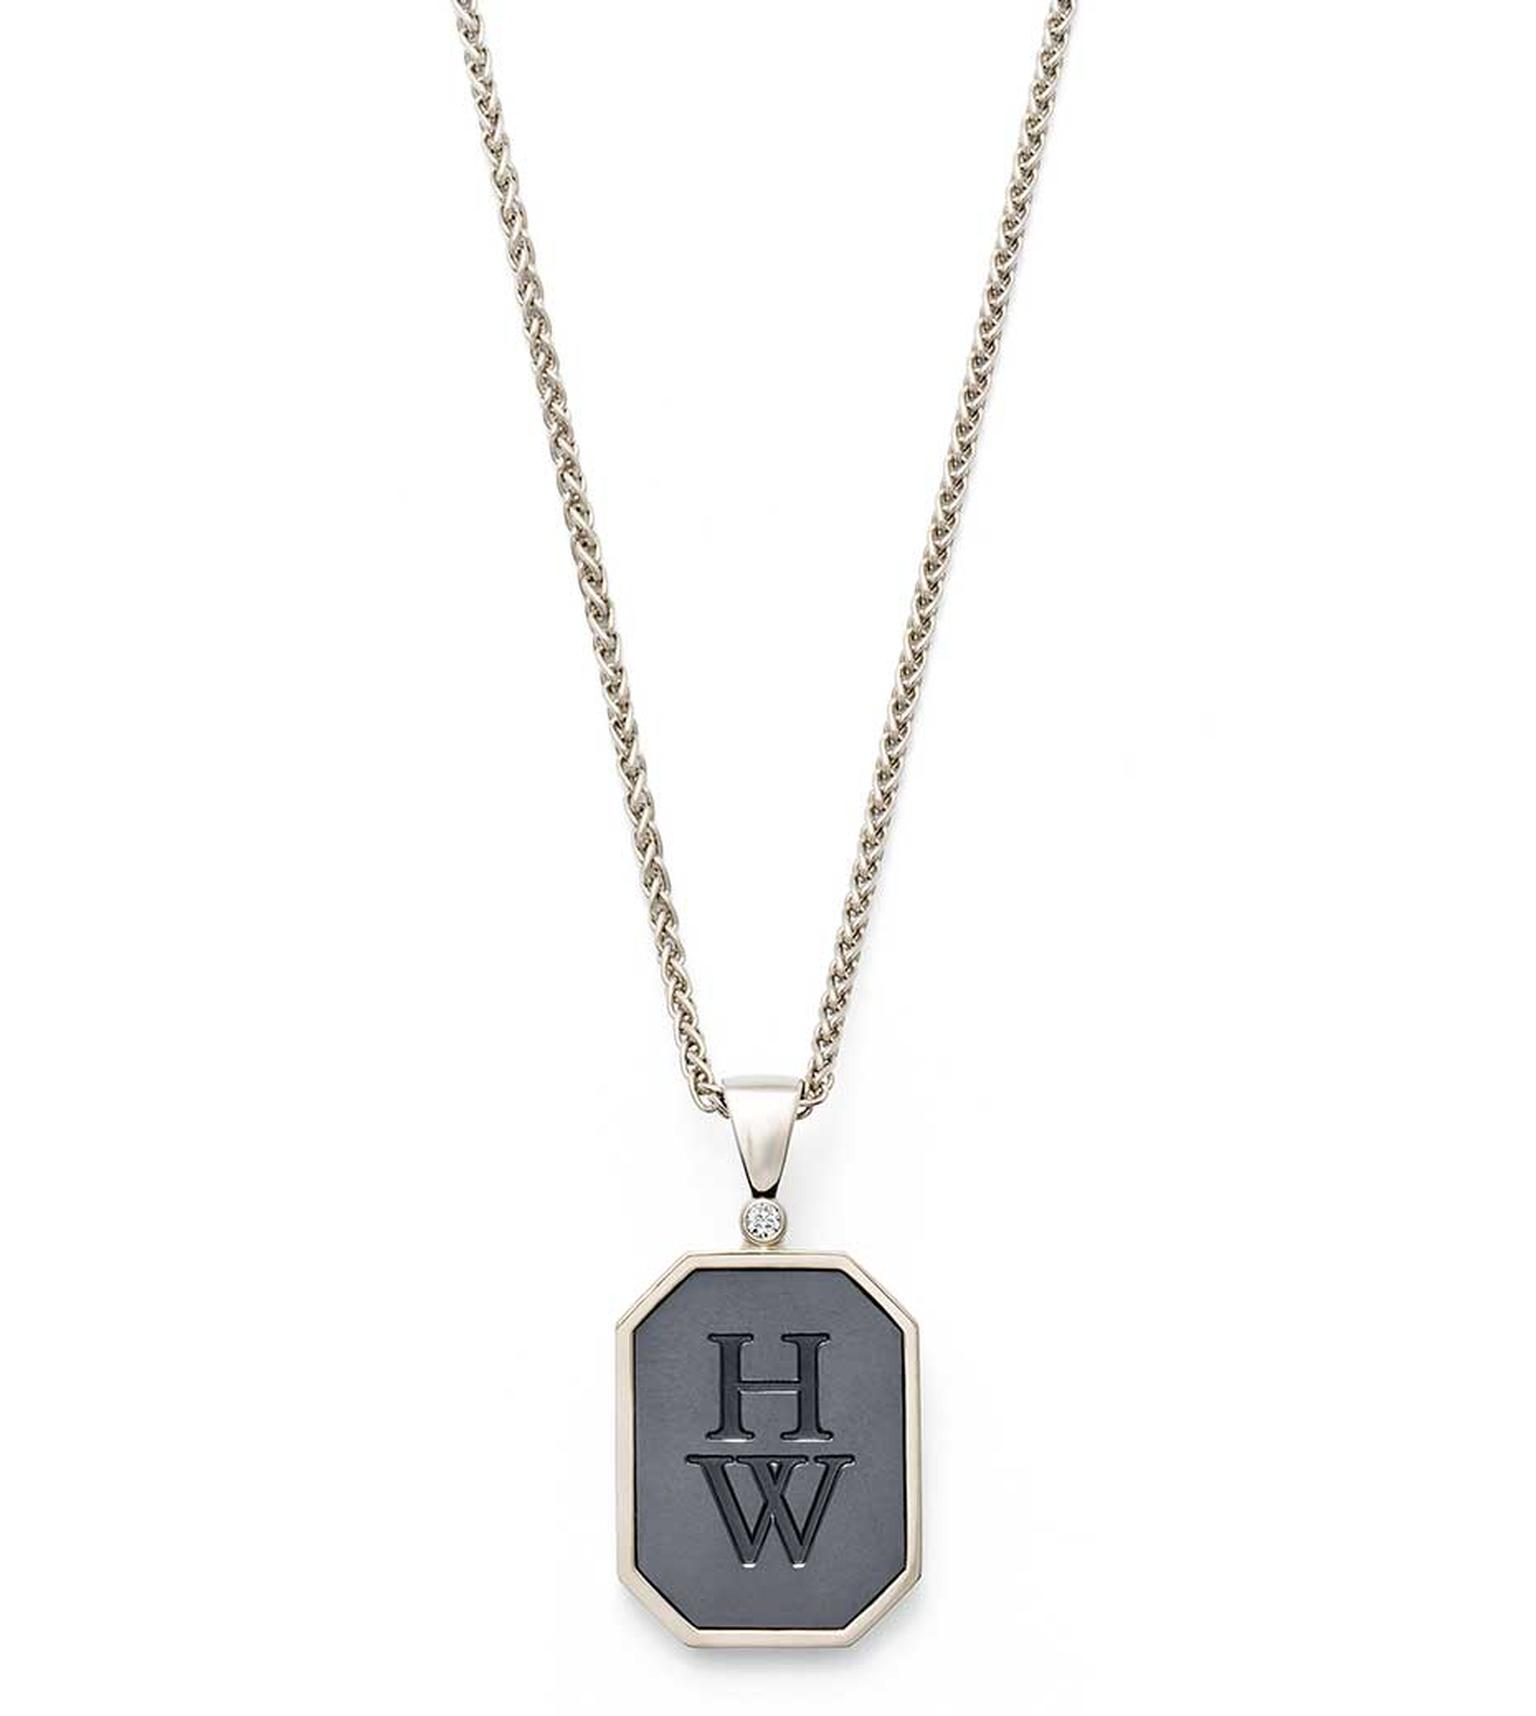 Harry Winston Zalium HW Logo pendant in white gold and Zalium, set with a round-brilliant diamond.